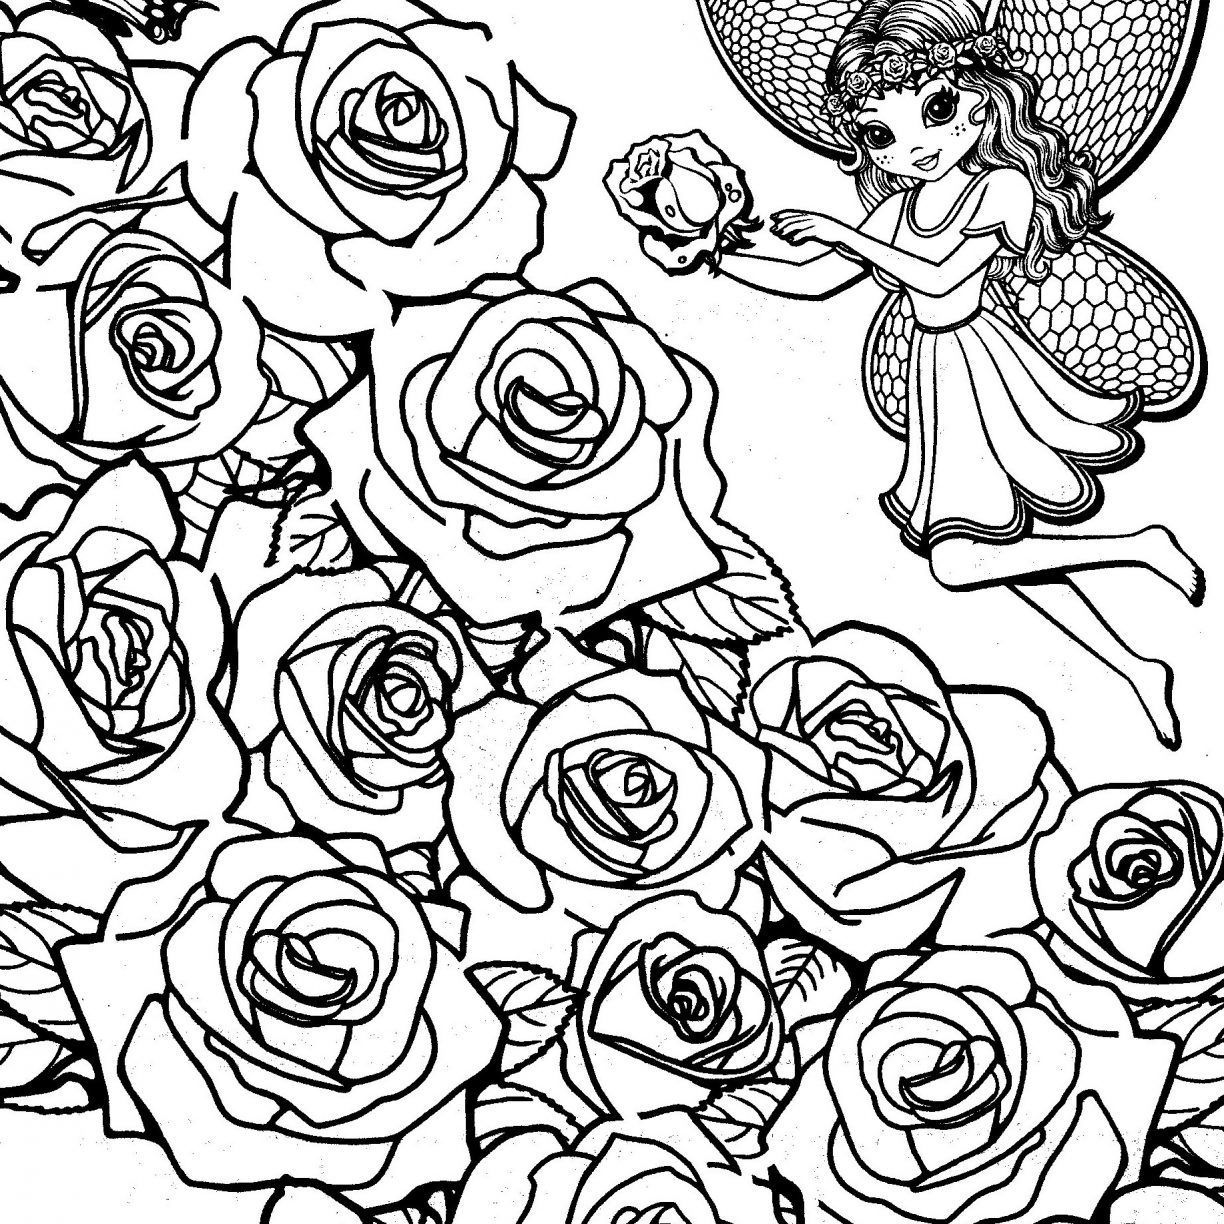 1224x1224 Best Of Flower Garden Coloring Pages Gallery Printable Coloring